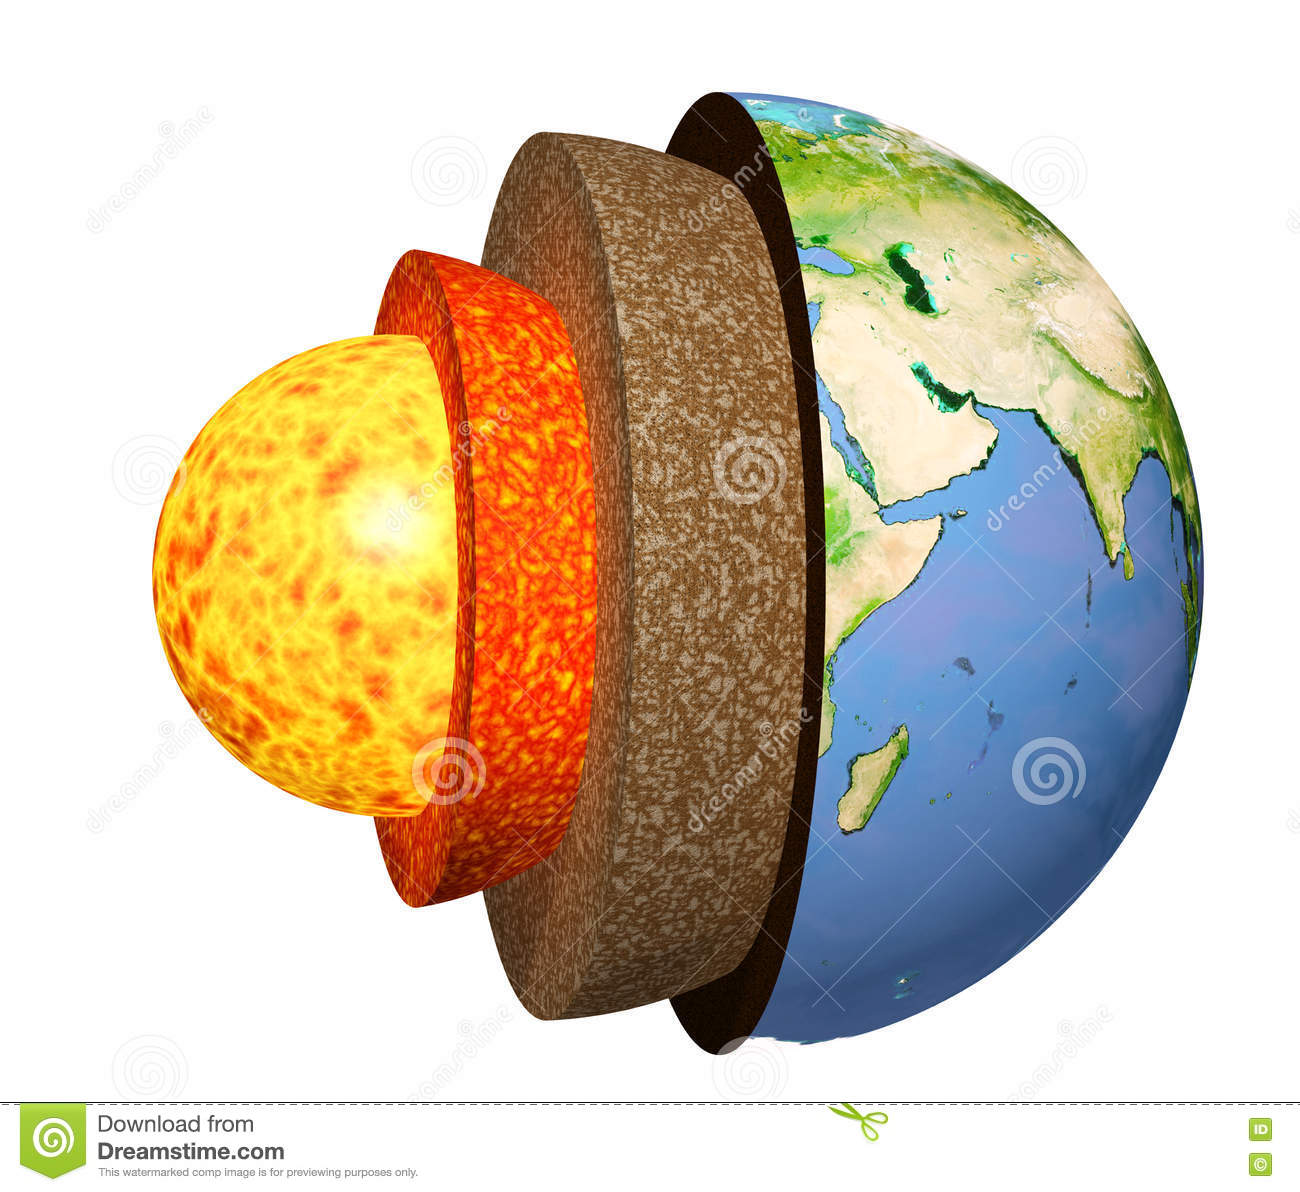 Structure Of The Earth Stock Illustration - Image: 72288652